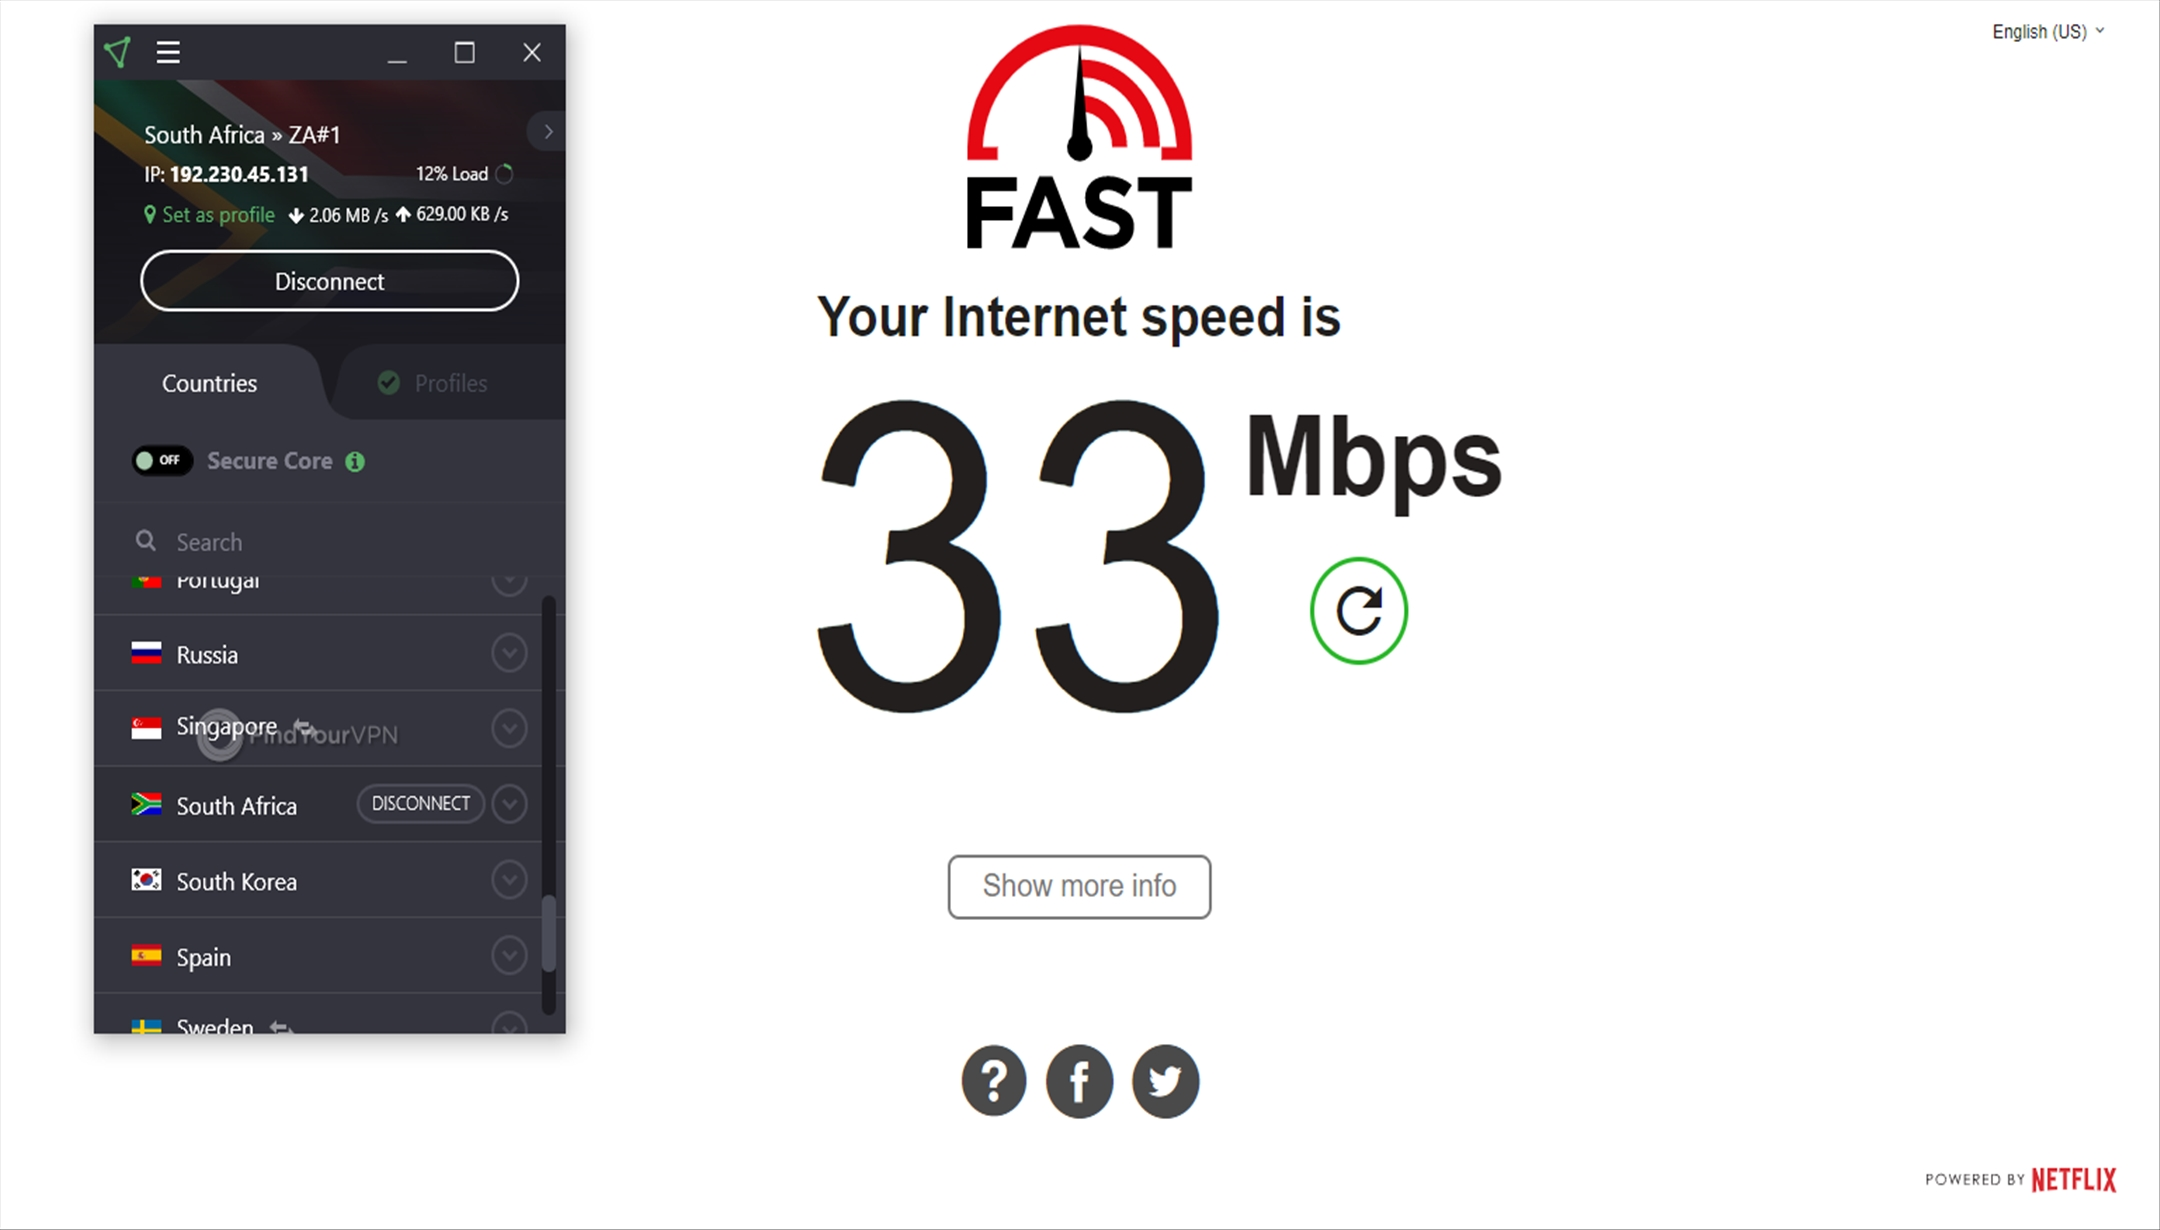 ProtonVPN Speed Test South Africa 33 Mbps